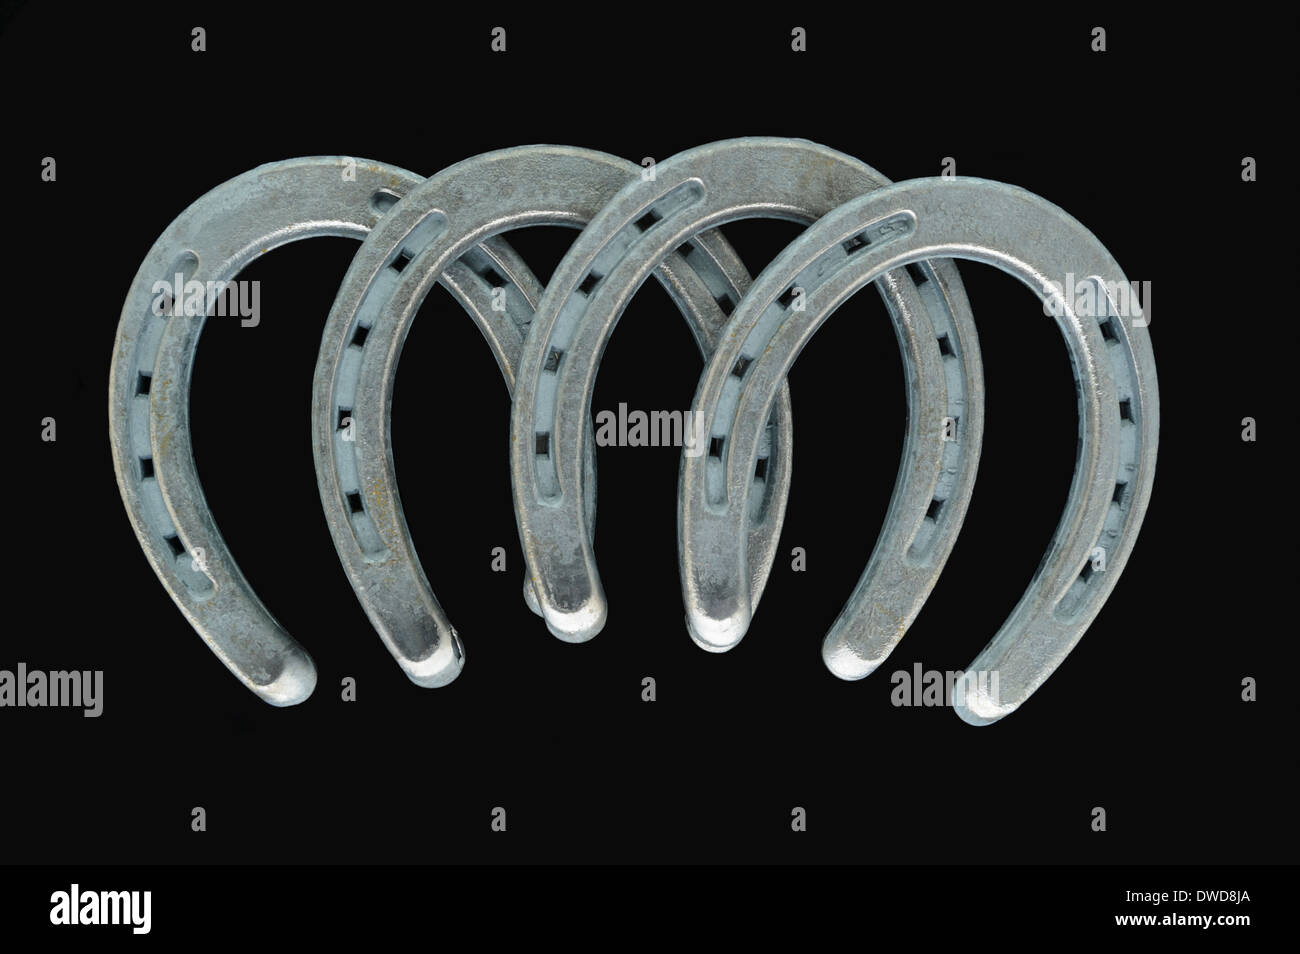 Four silver horseshoes, in a symmetrical arch for good fortune and luck, a simple studio shot on a black background. - Stock Image